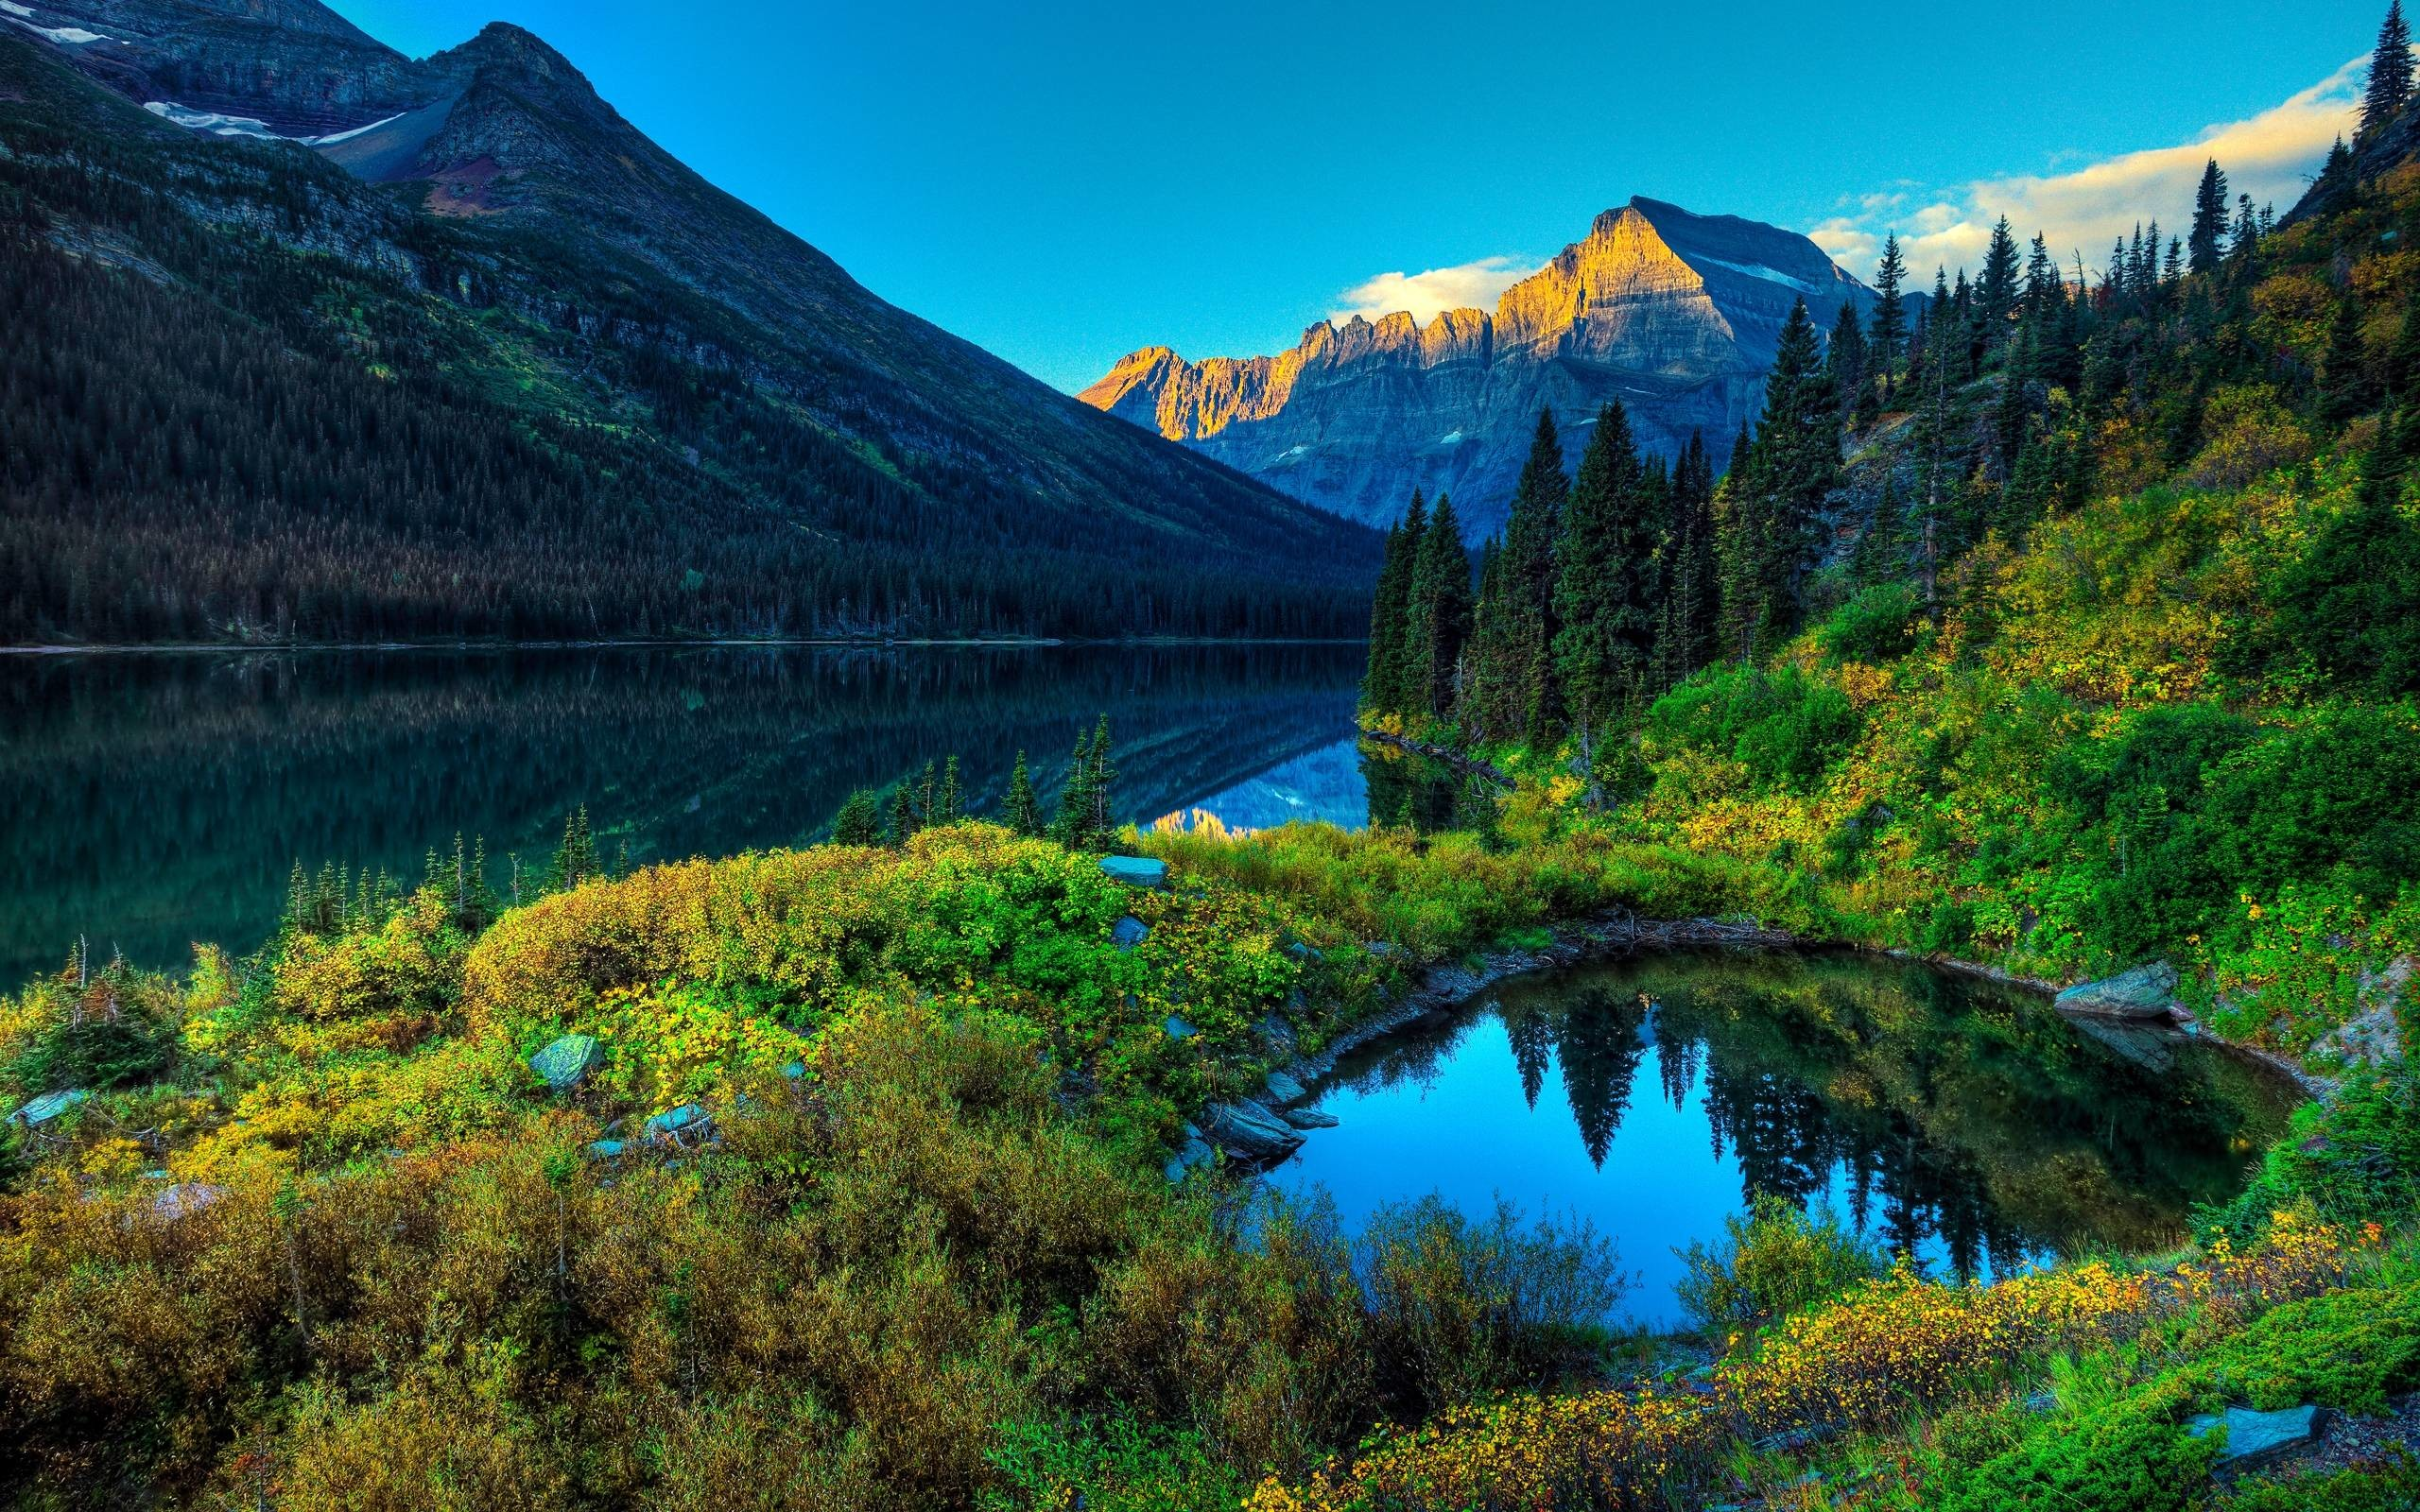 Water Hd Spring Wallpaper Simple White Decoration Ideas Personalized  Reflection Sample Mountain